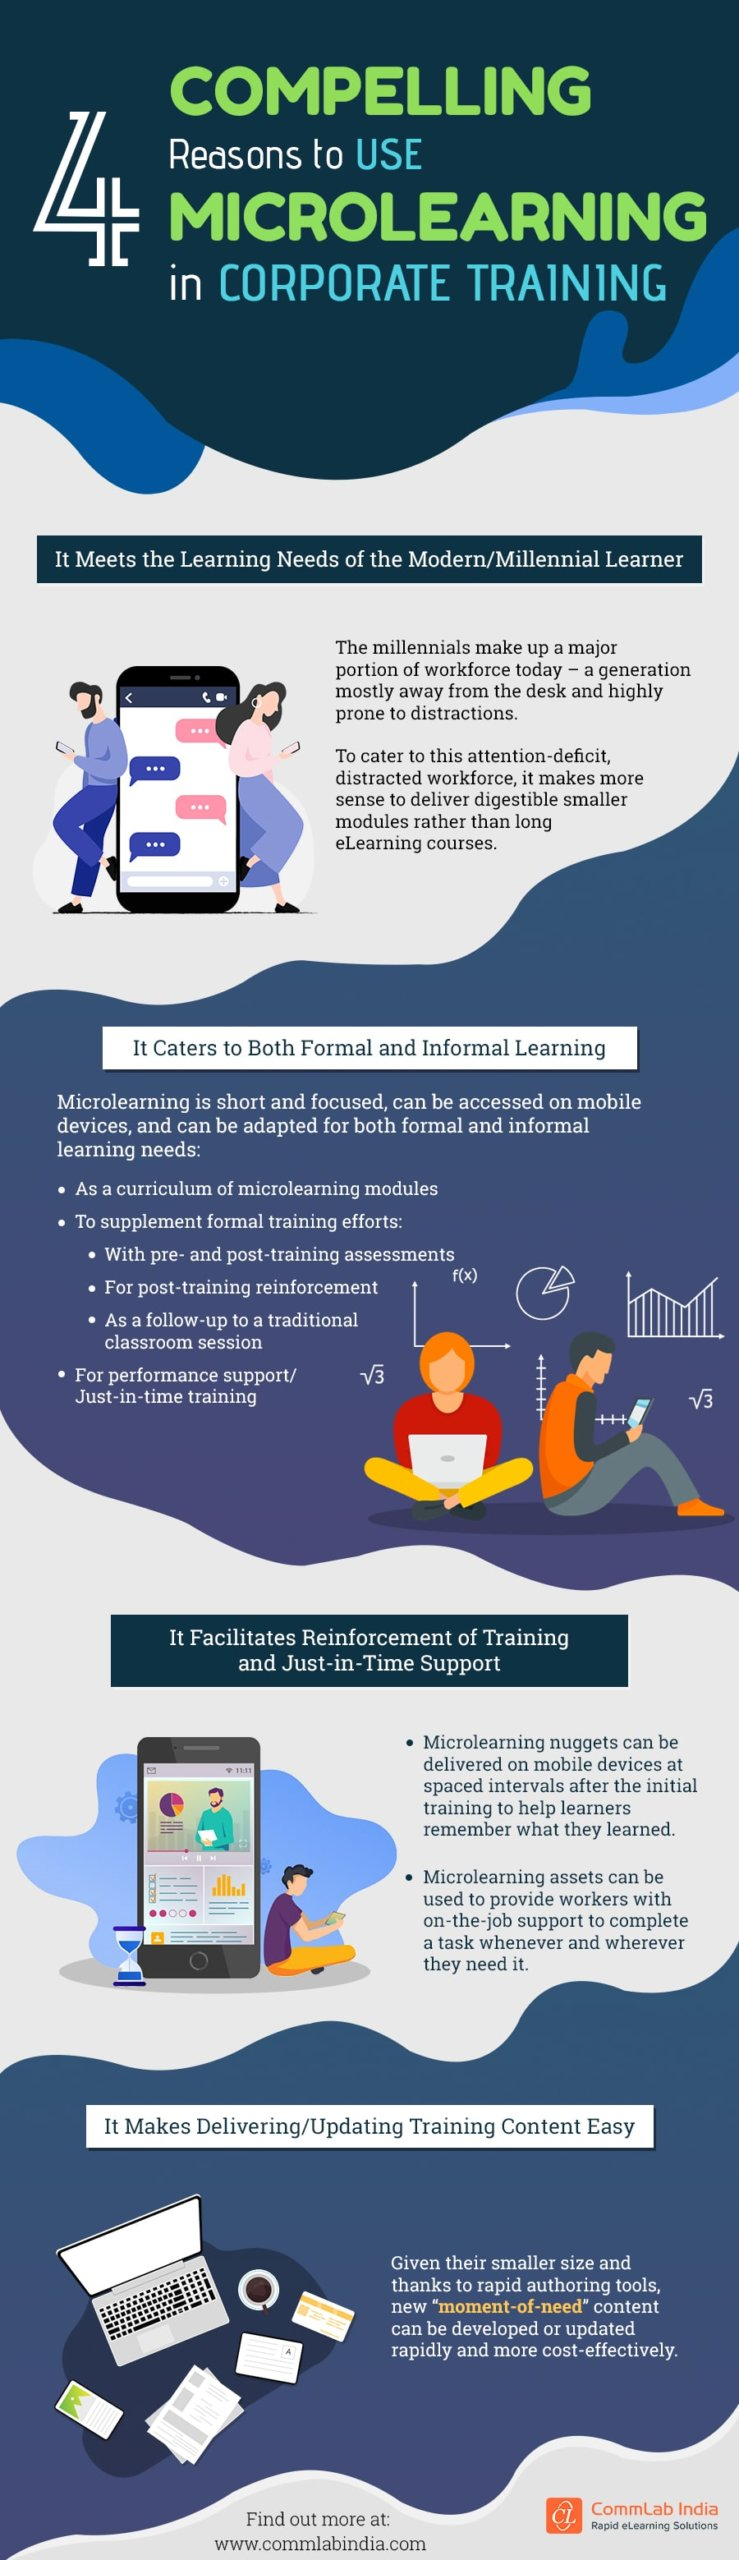 Microlearning in Corporate Training: Why Use It?